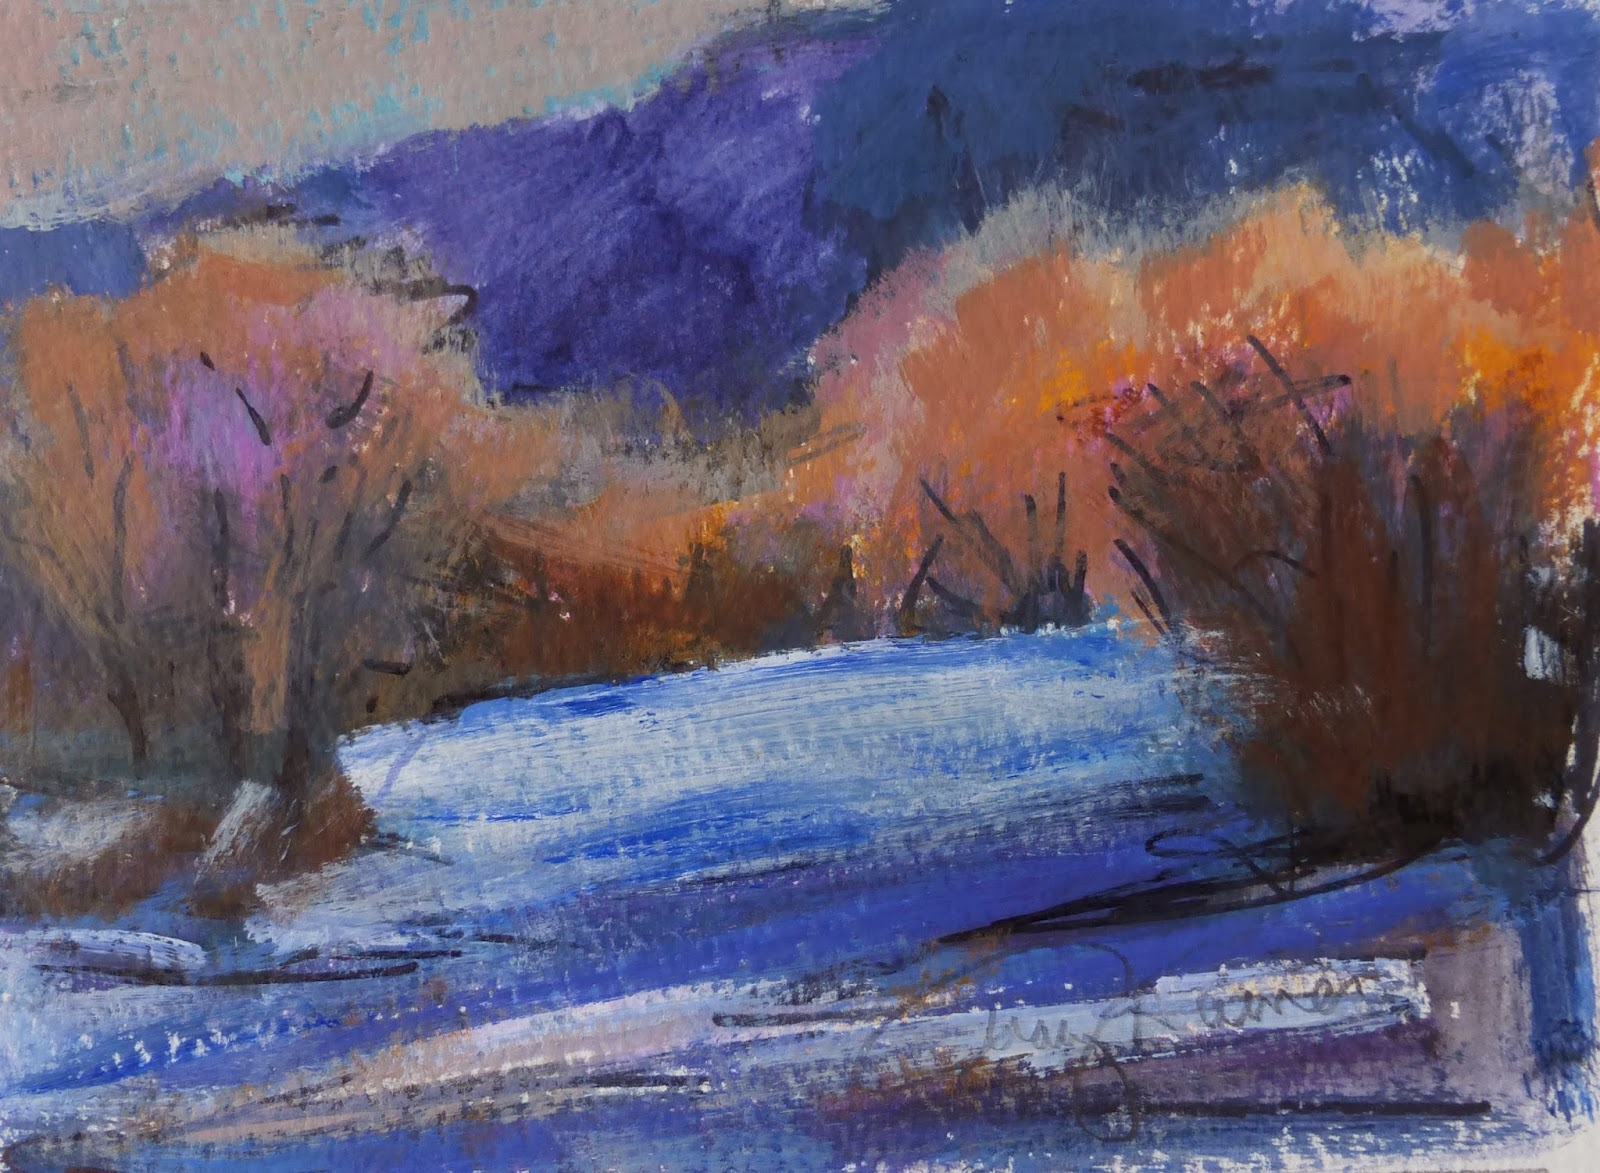 Fine watercolor art for sale - Deer Creek Rhythm Is A 5x7 Mixed Media Painting Using Acrylic Marker Ink And Pencil On 140lb Watercolor Paper There Is A Small Margin Around The Image To